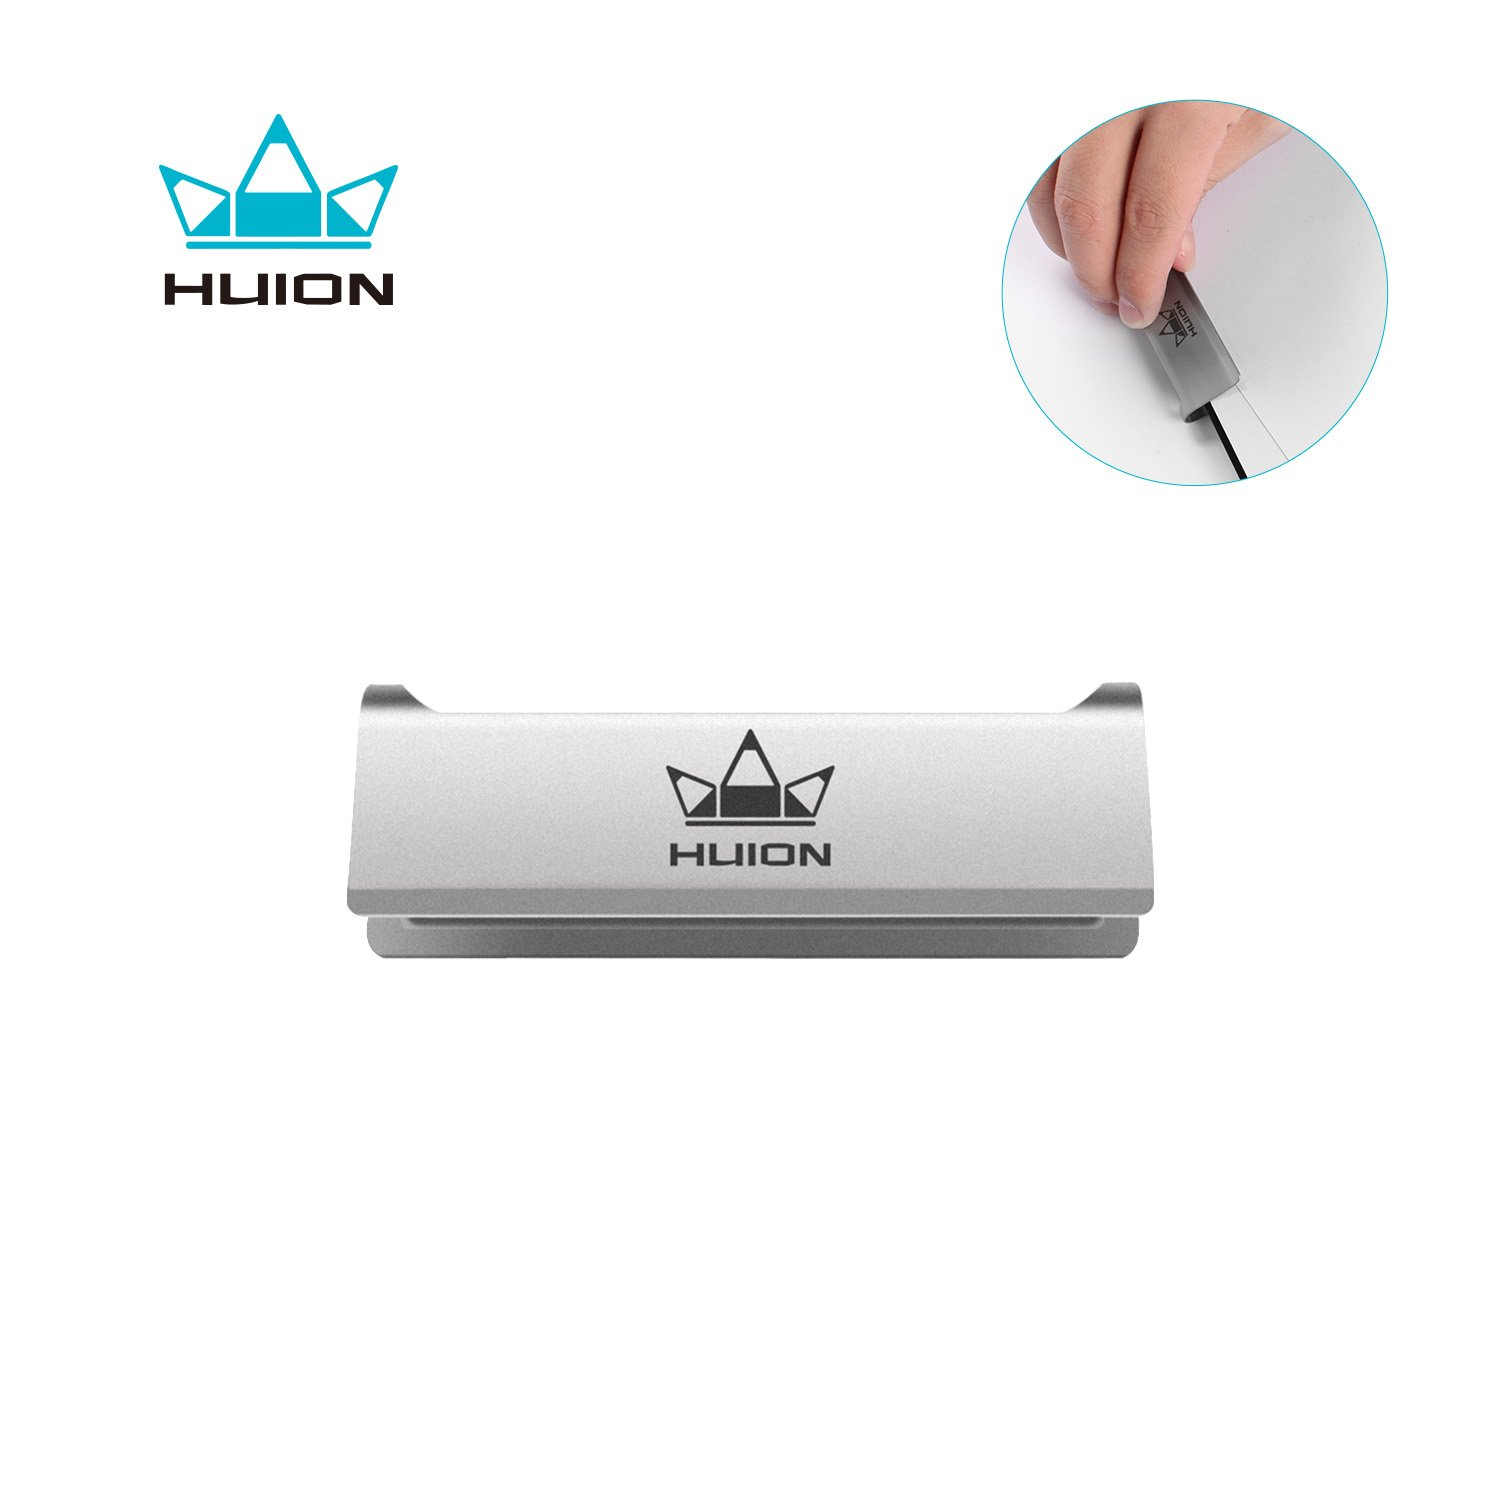 Huion Light Box Tracing Paper Clip for LED Light Table L4S A2 A3 A4 LB4 LB3-8mm LYSB01N9JJS5R-ELECTRNCS